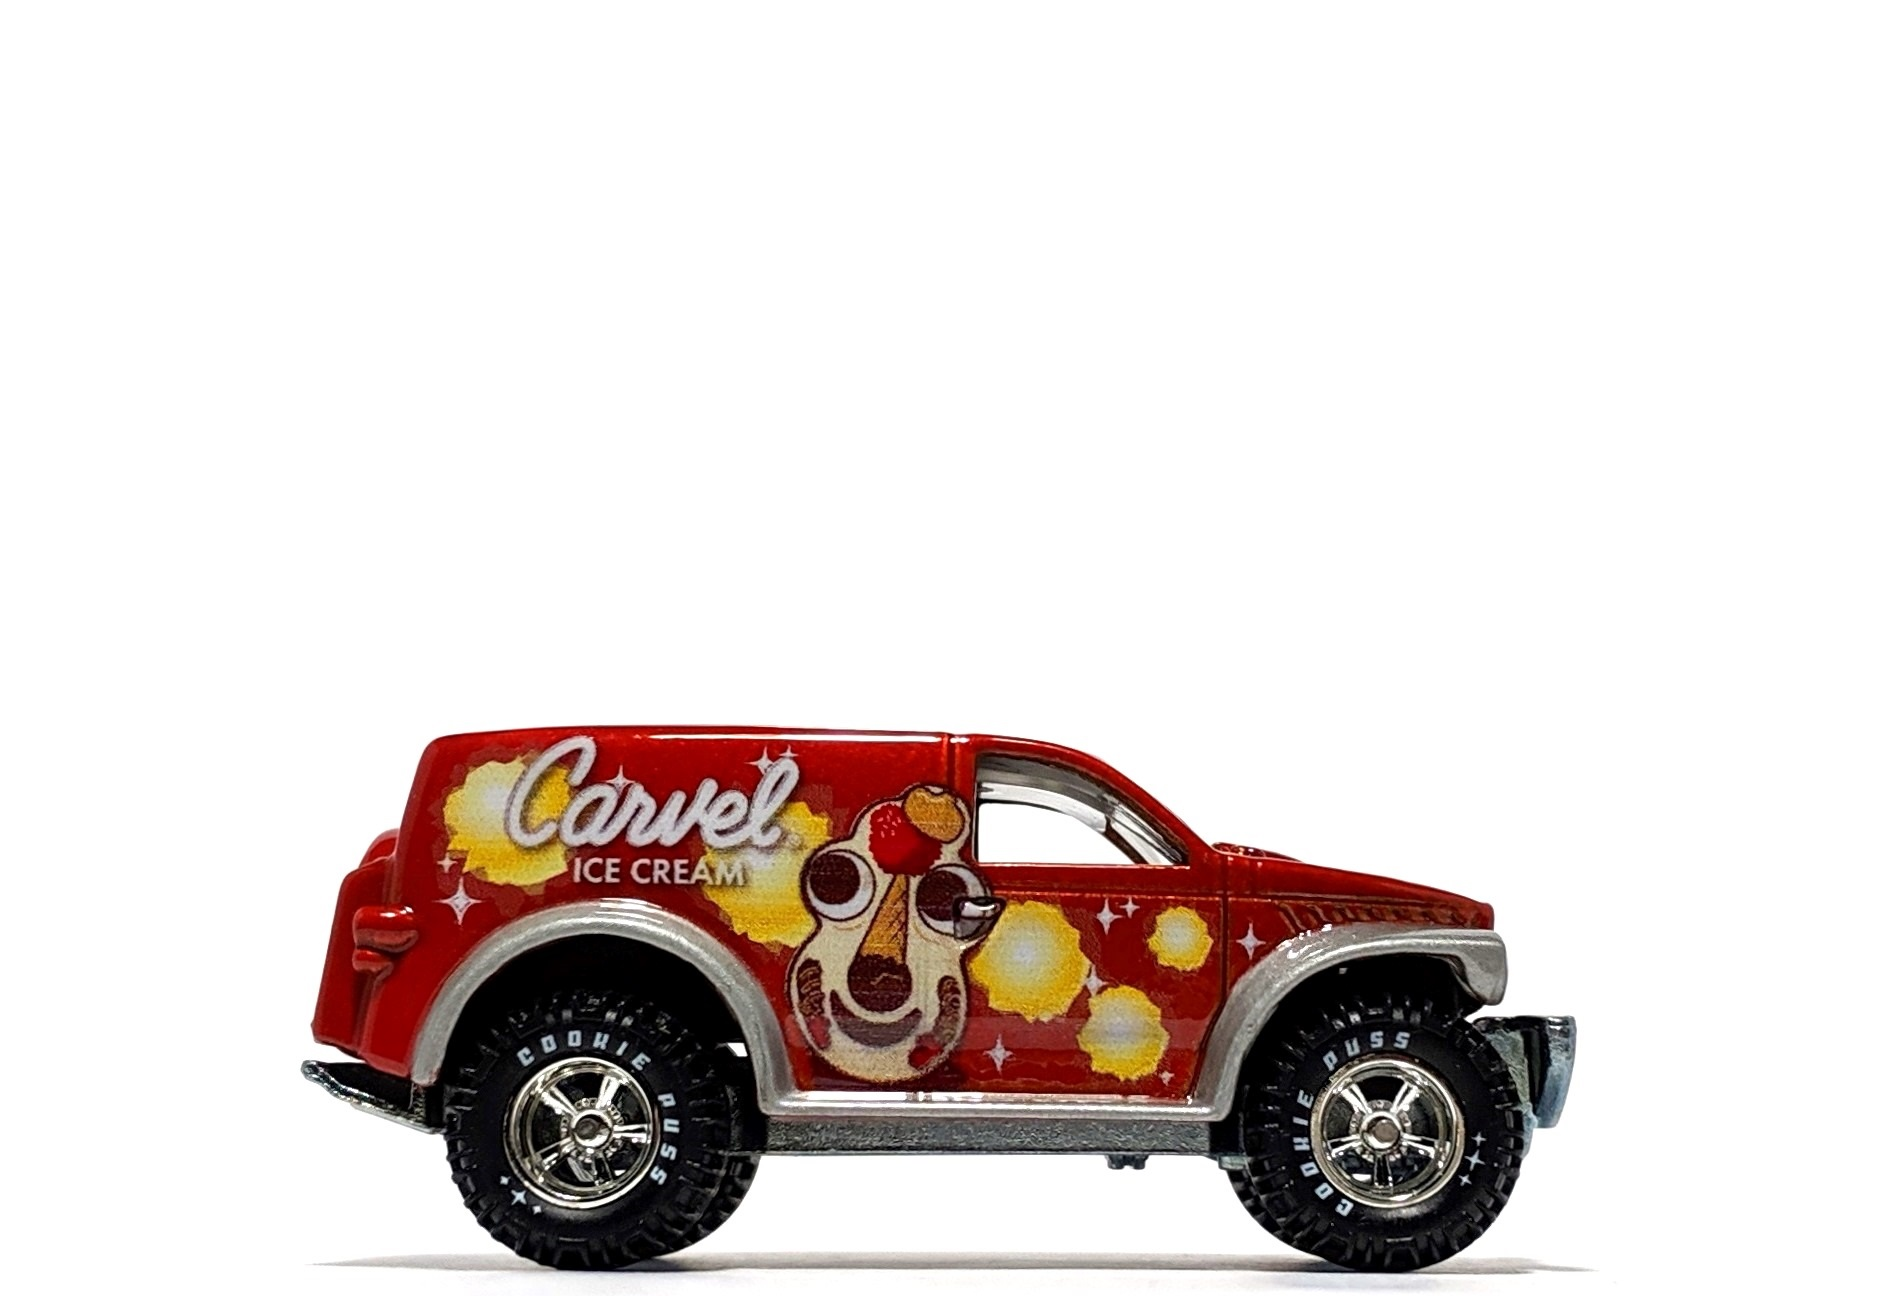 "Power Panel ""Carvel Ice Cream"", by Hot Wheels (Pop Culture: Carvel Ice Cream)"